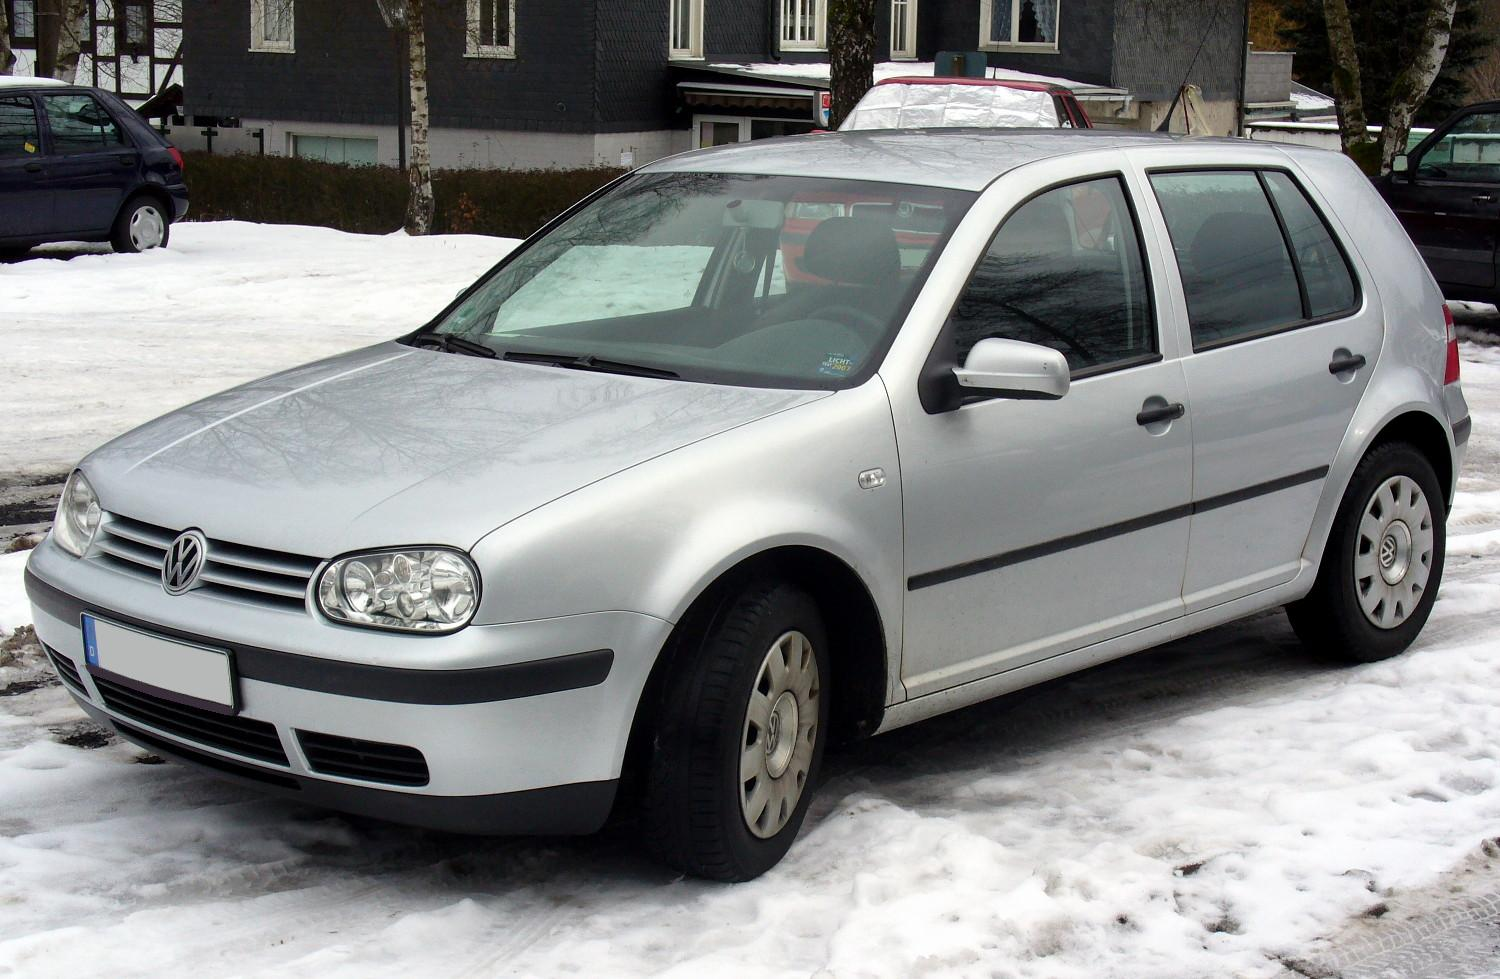 Volkswagen golf mk4 wikipedia bahasa indonesia ensiklopedia bebas - Entraxe golf 4 ...